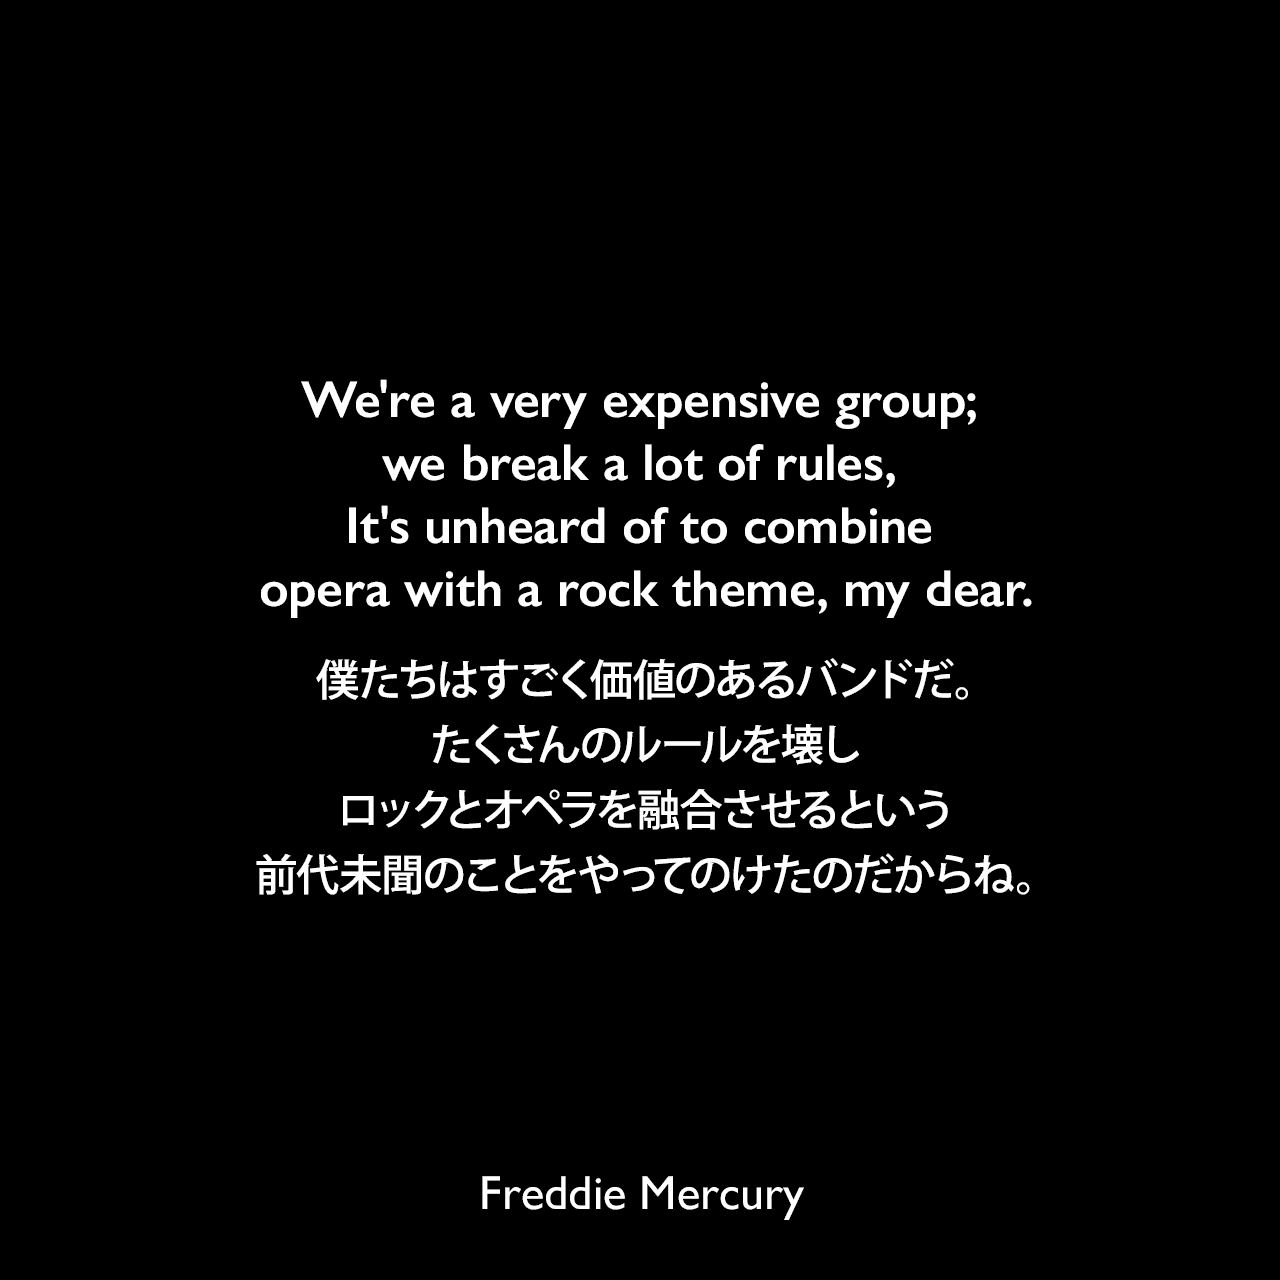 We're a very expensive group; we break a lot of rules, It's unheard of to combine opera with a rock theme, my dear.僕たちはすごく価値のあるバンドだ。たくさんのルールを壊し、ロックとオペラを融合させるという前代未聞のことをやってのけたのだからね。Freddie Mercury